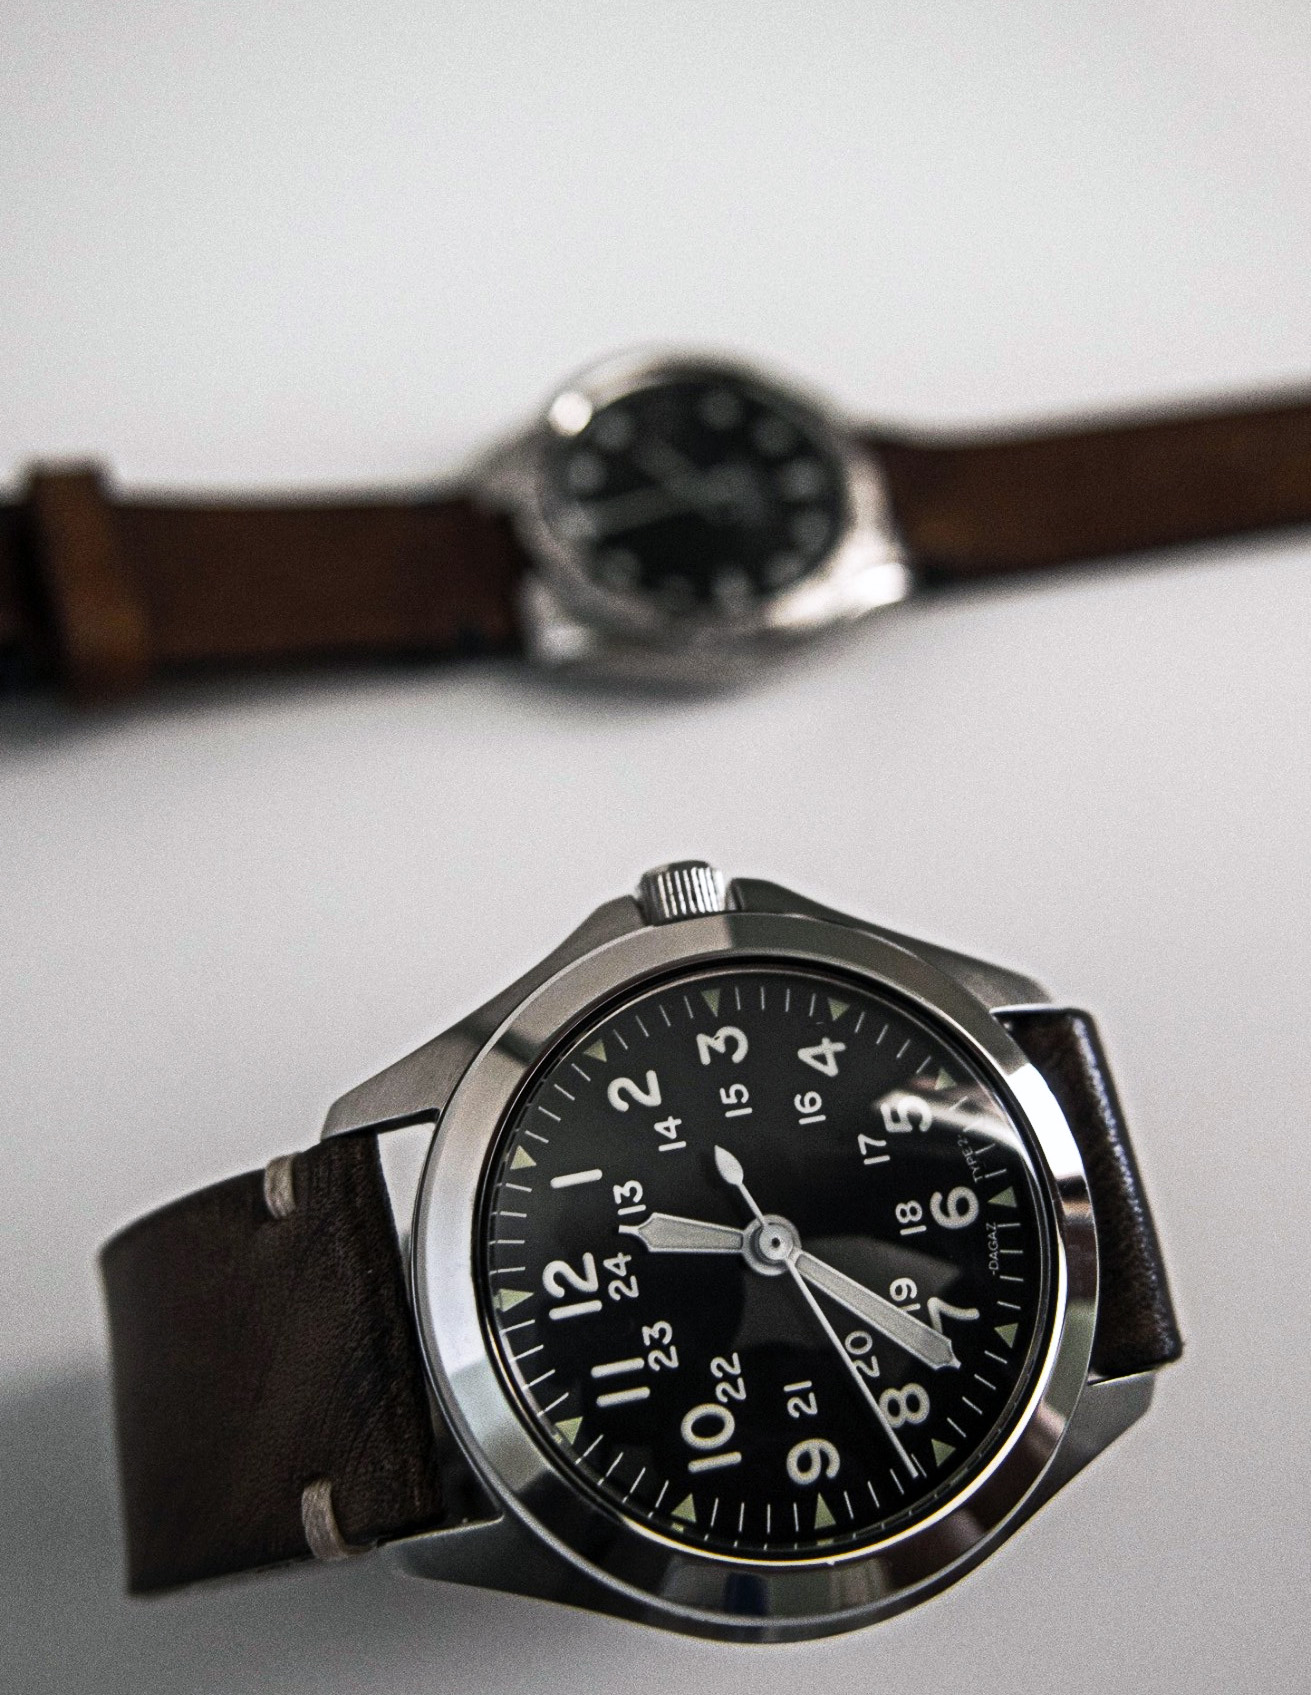 The  Traveling Watch in the foreground with a  Sultan in the back. Both have received custom straps from ASC.